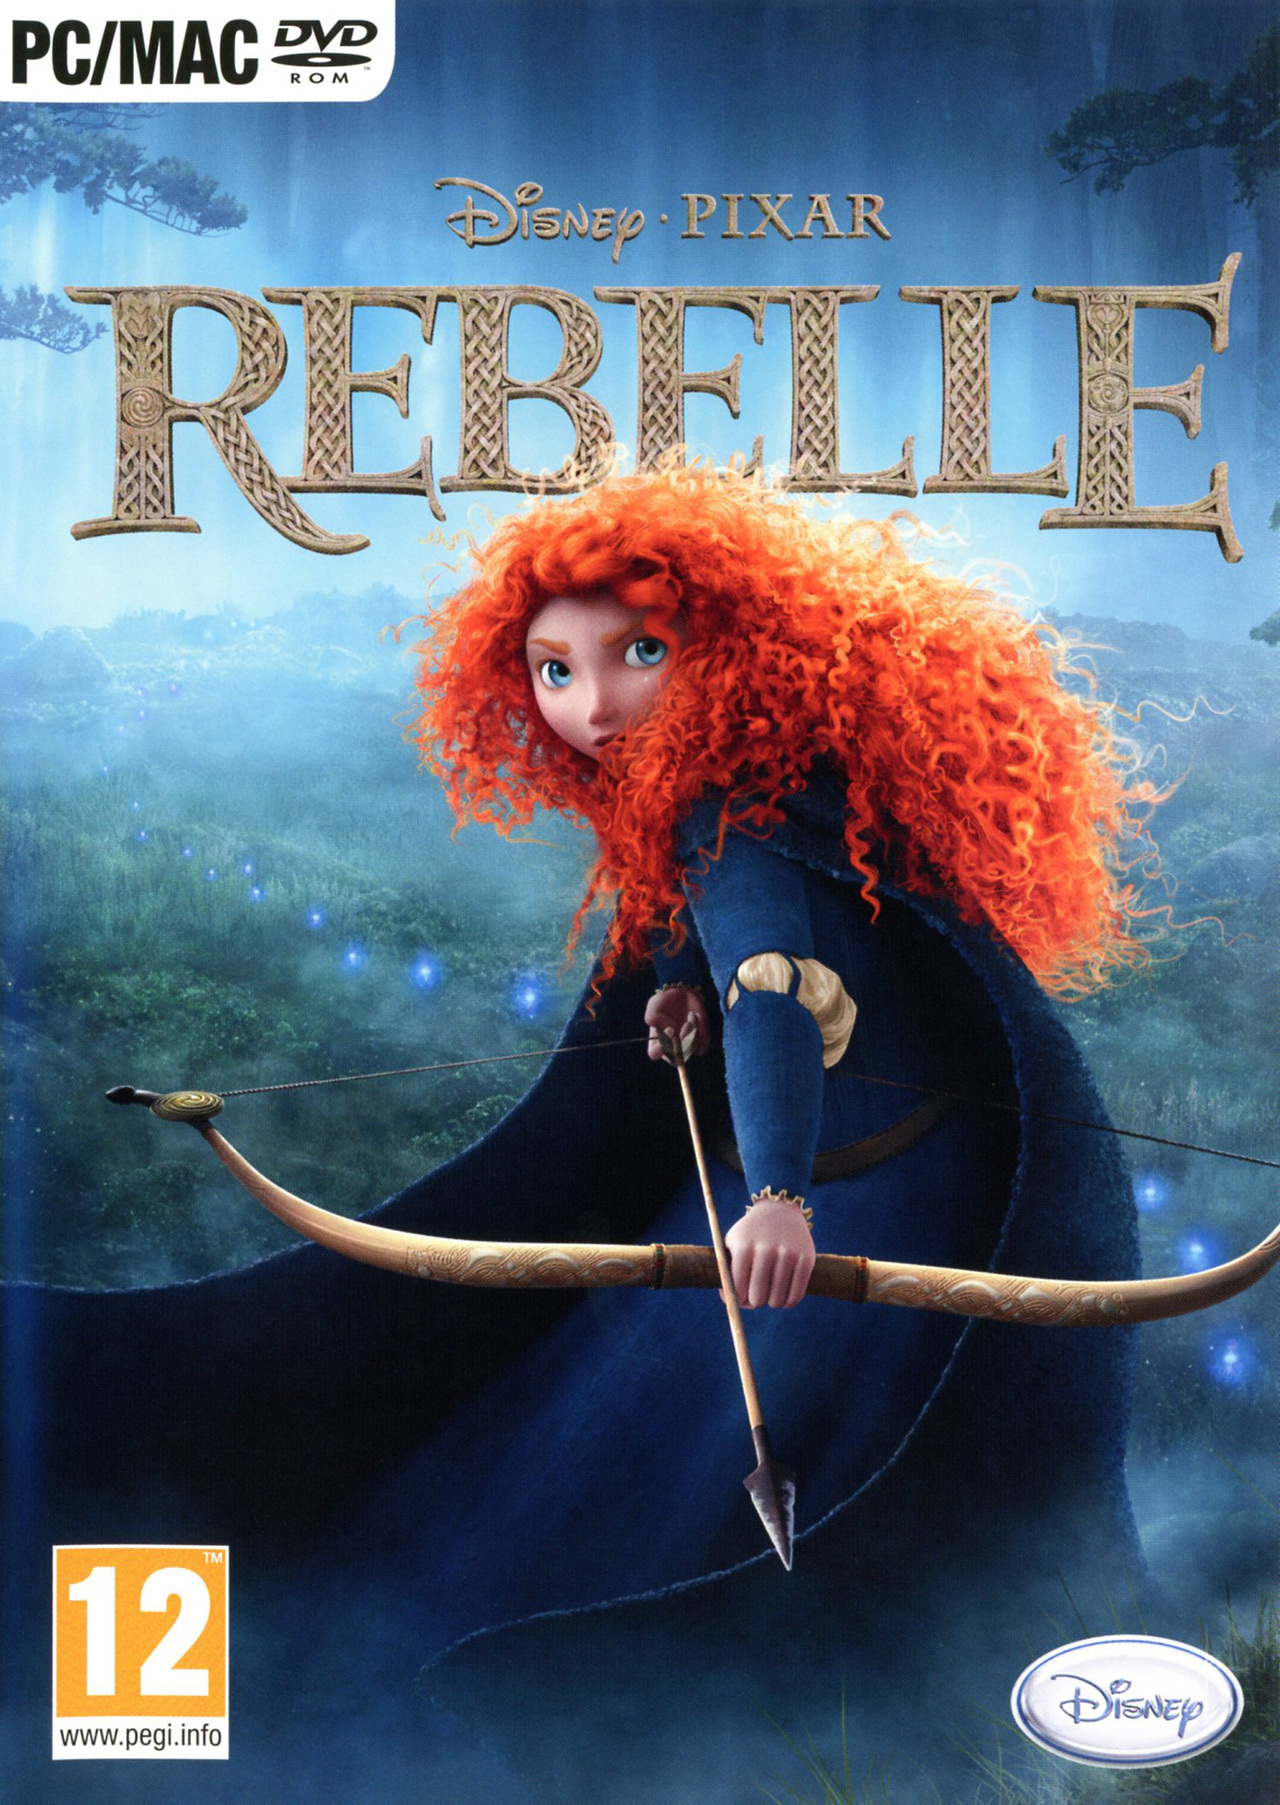 Brave The Video Game - Rebelle [PC]